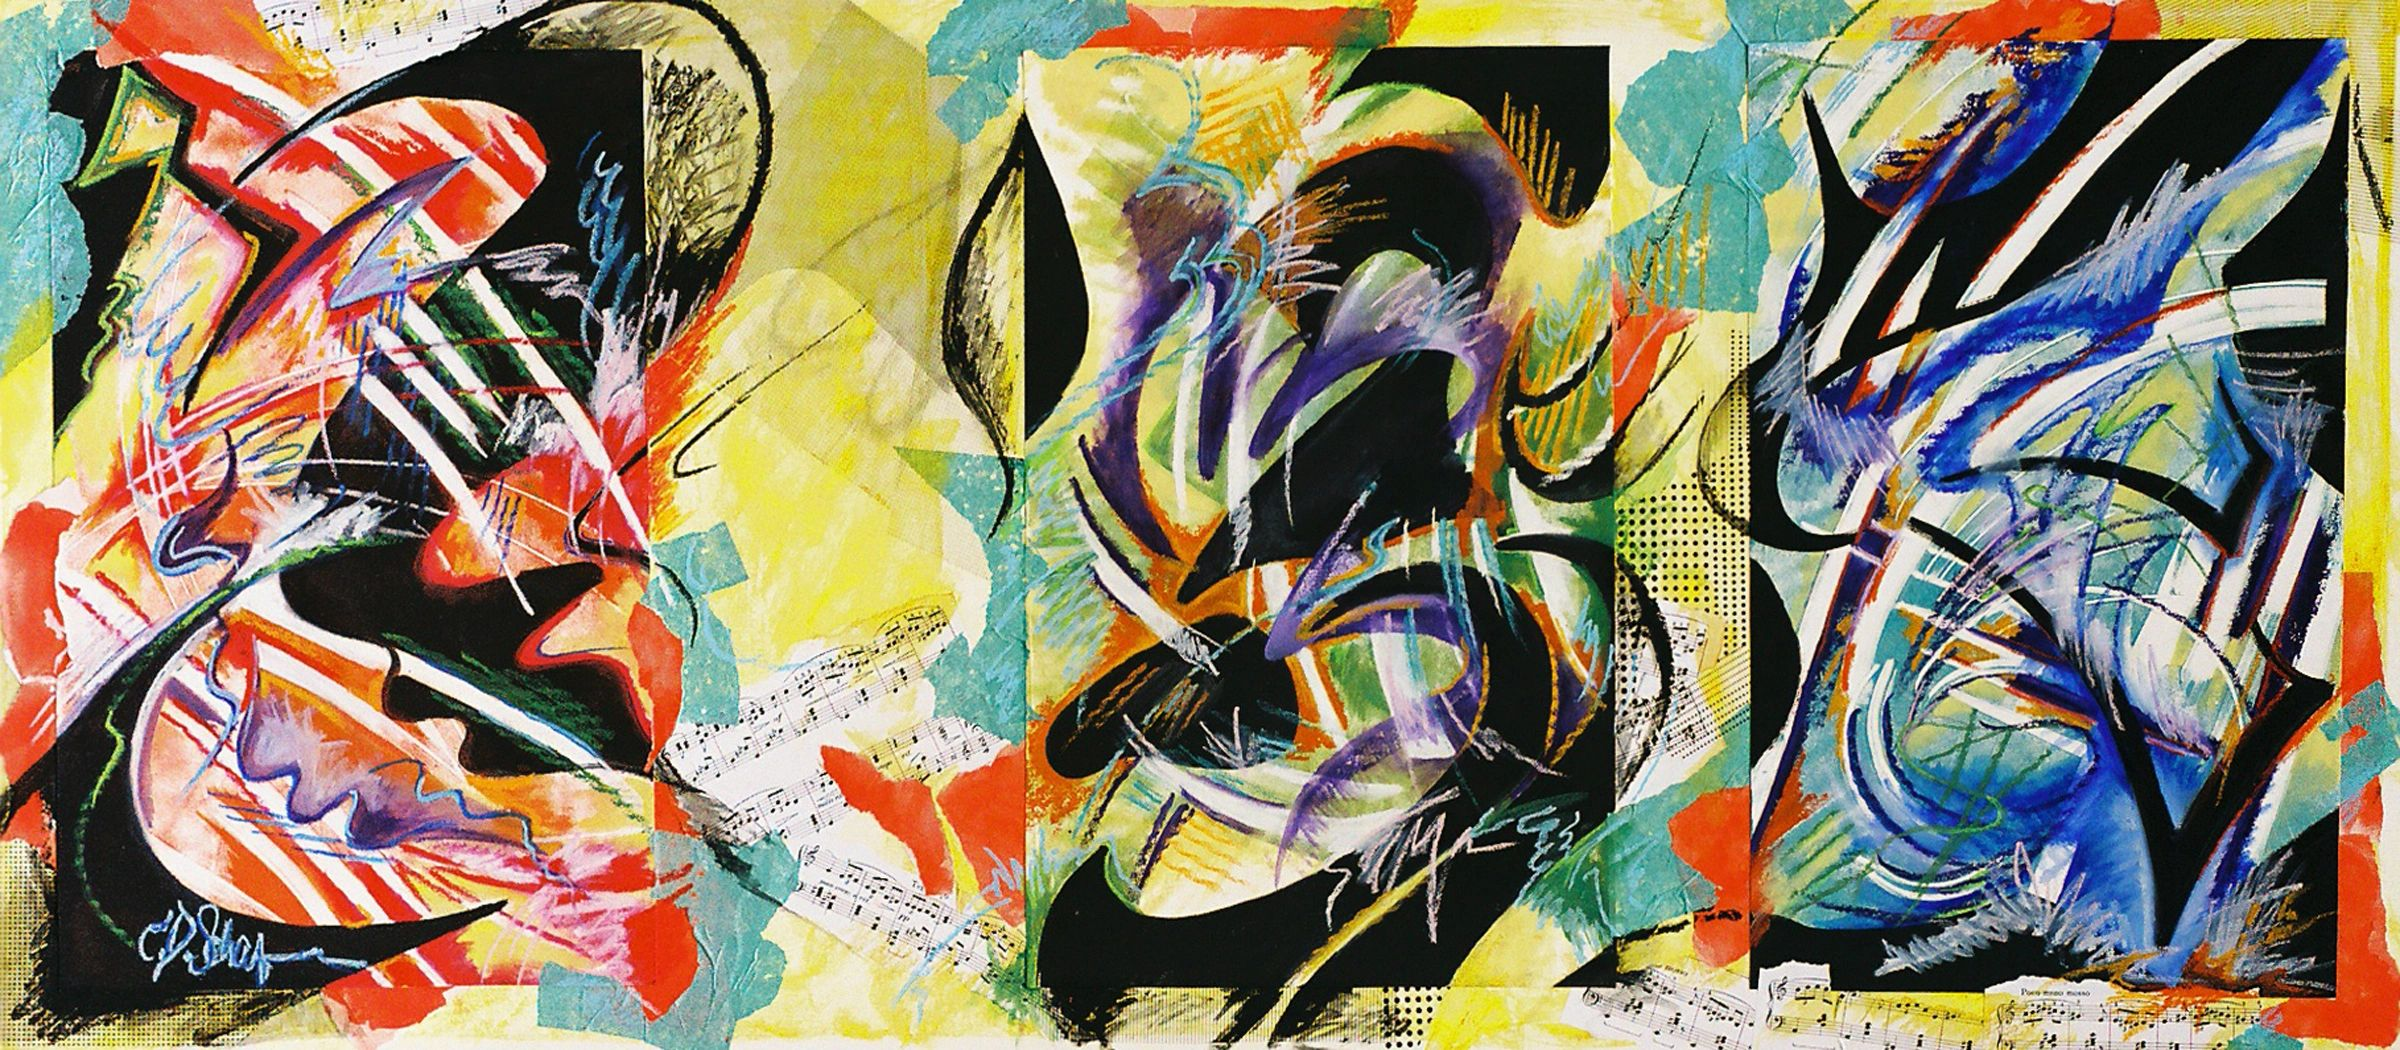 Changing Chords Mixed Media and Collage on Board 30 in x 60 in